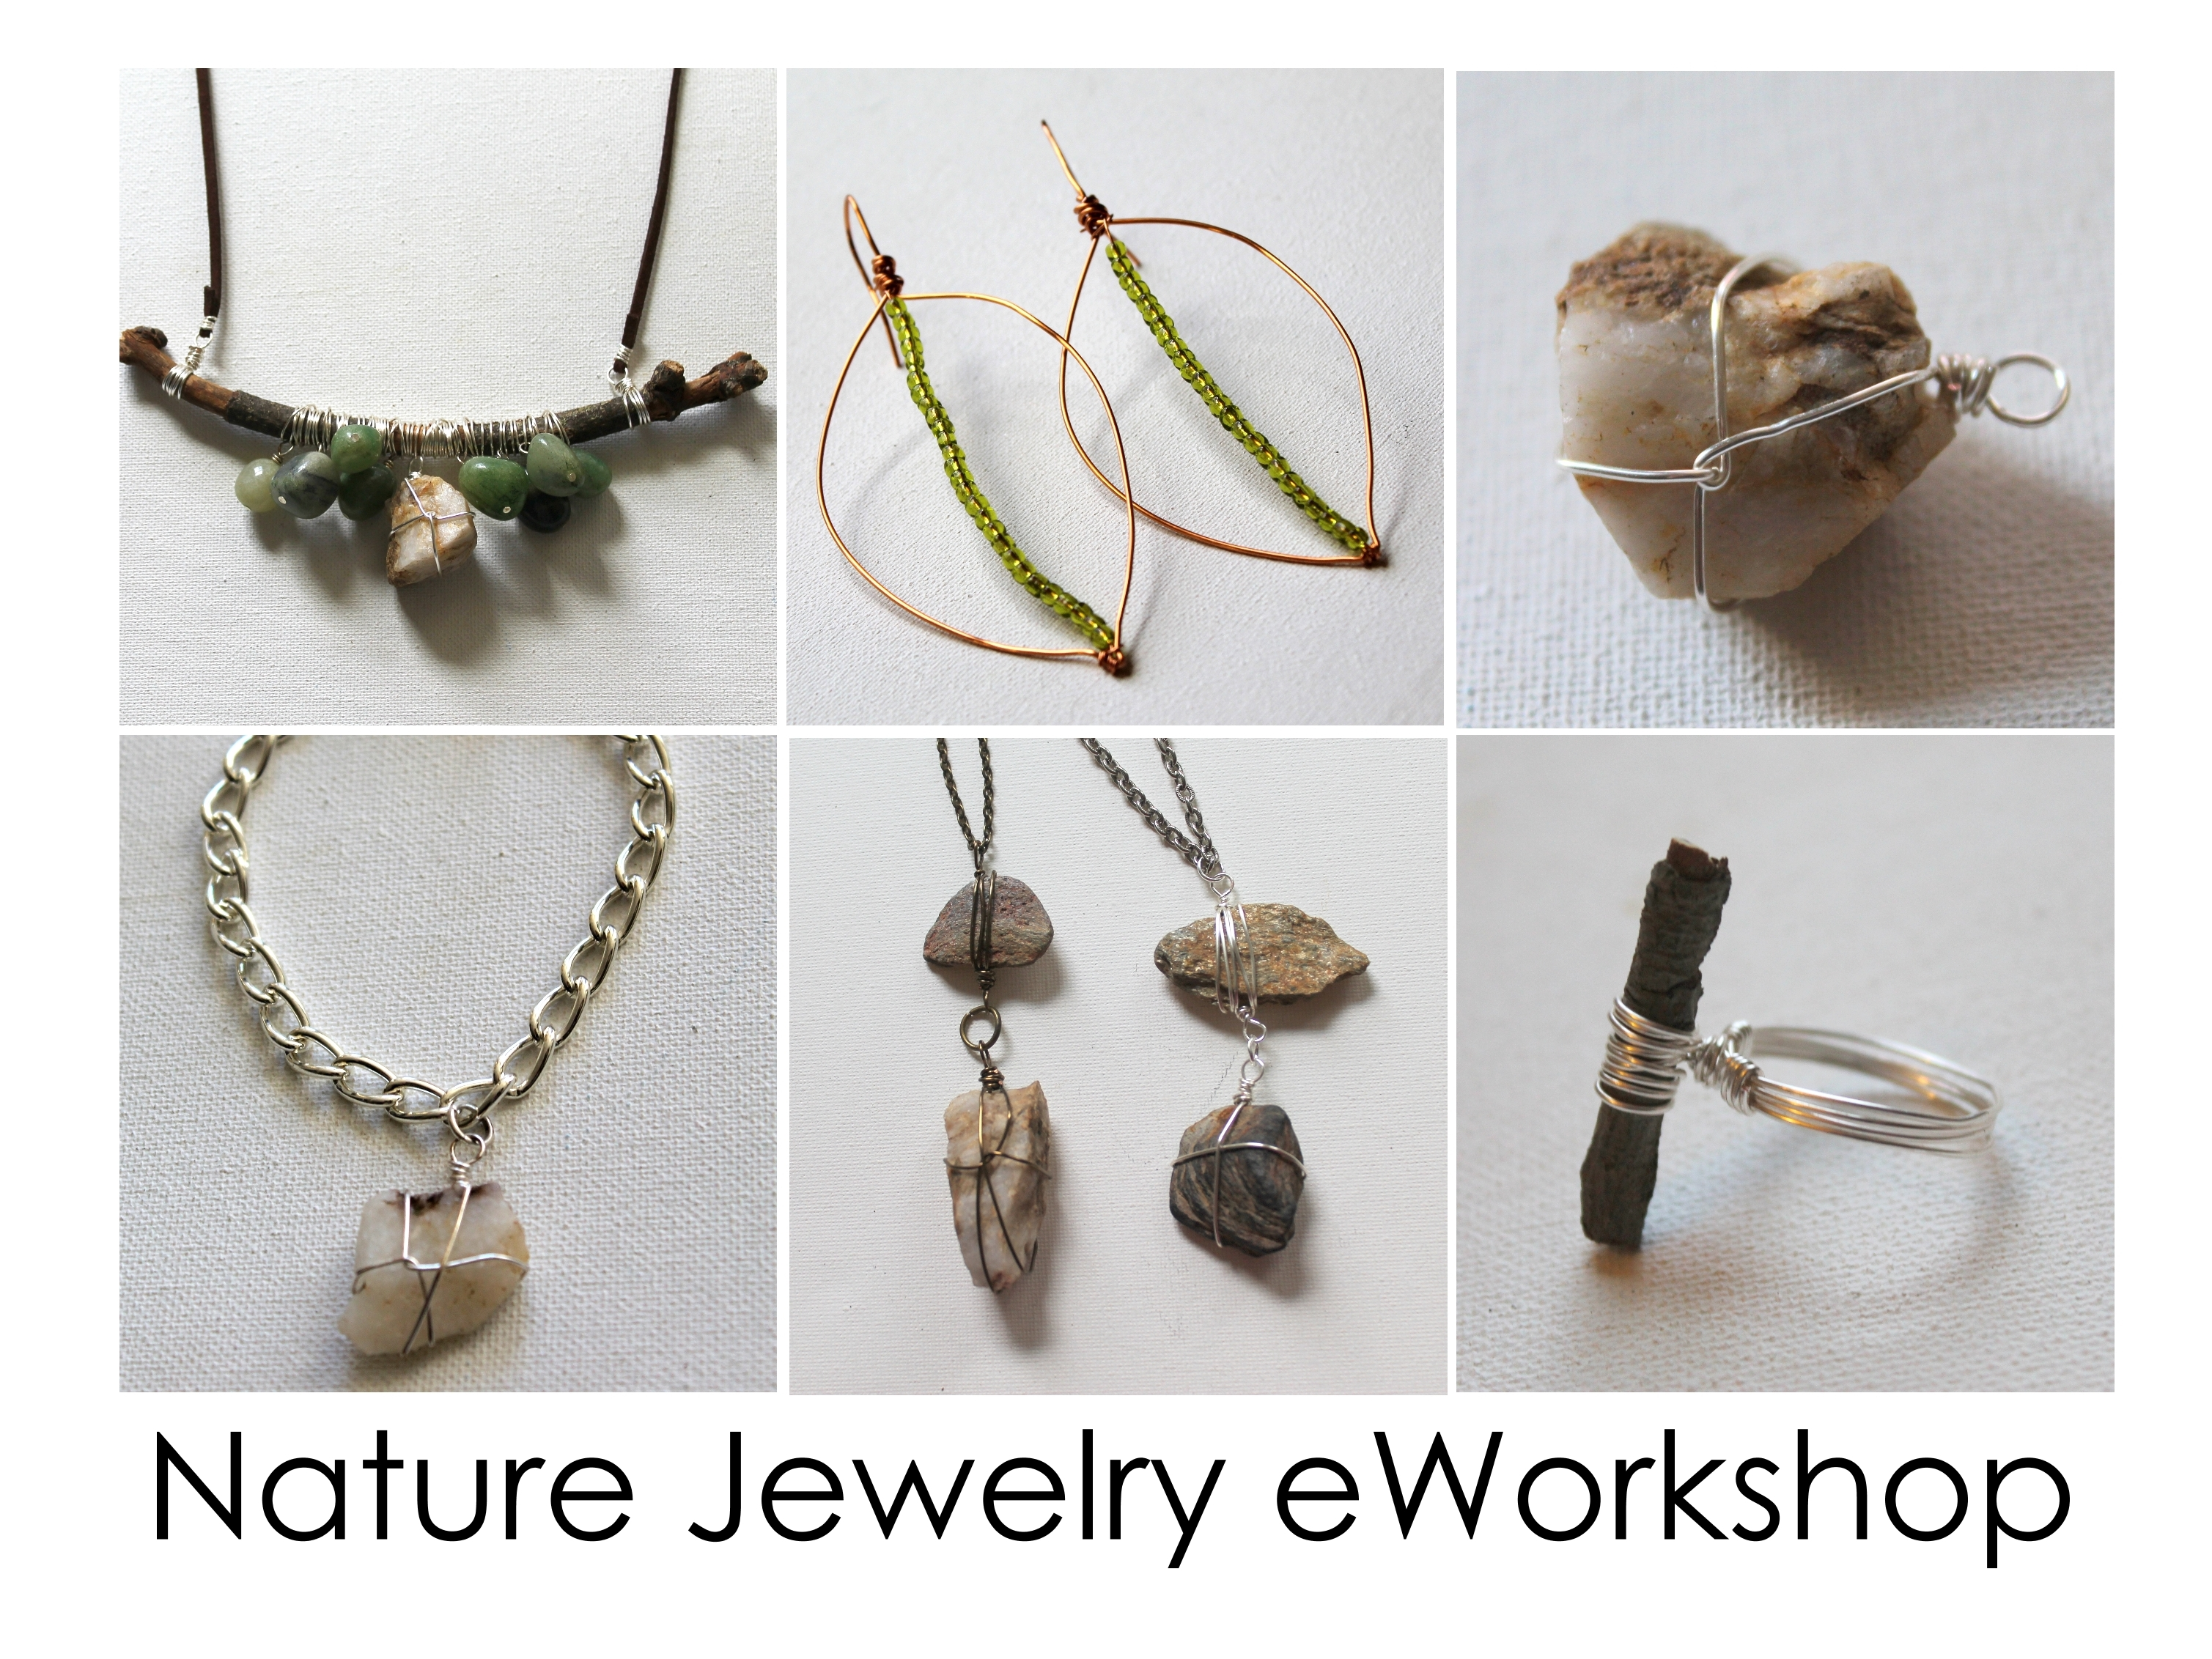 Nature Jewelry eWorkshop